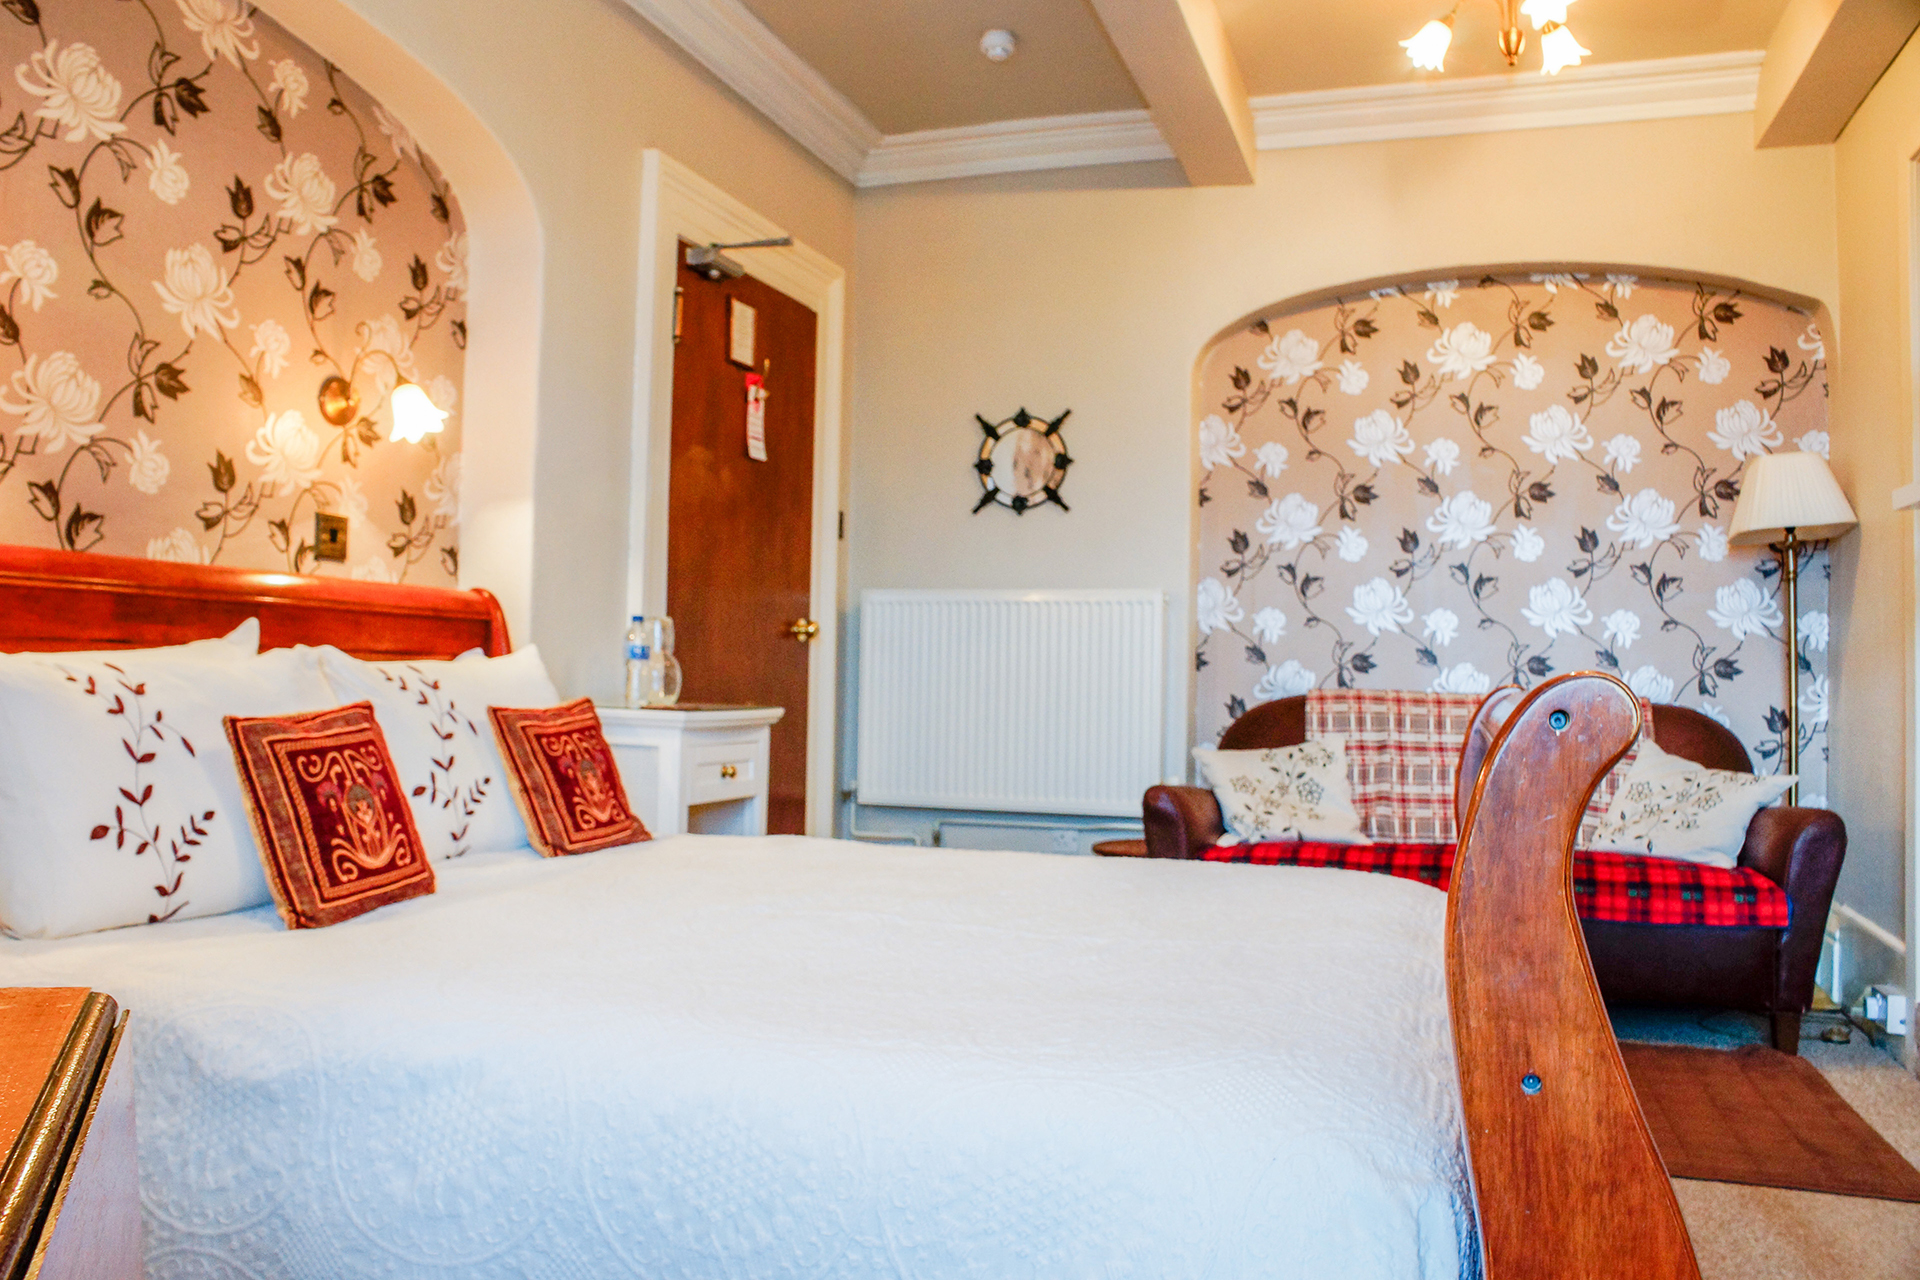 room 5 at the Castlebank hotel, Conwy, North Wales